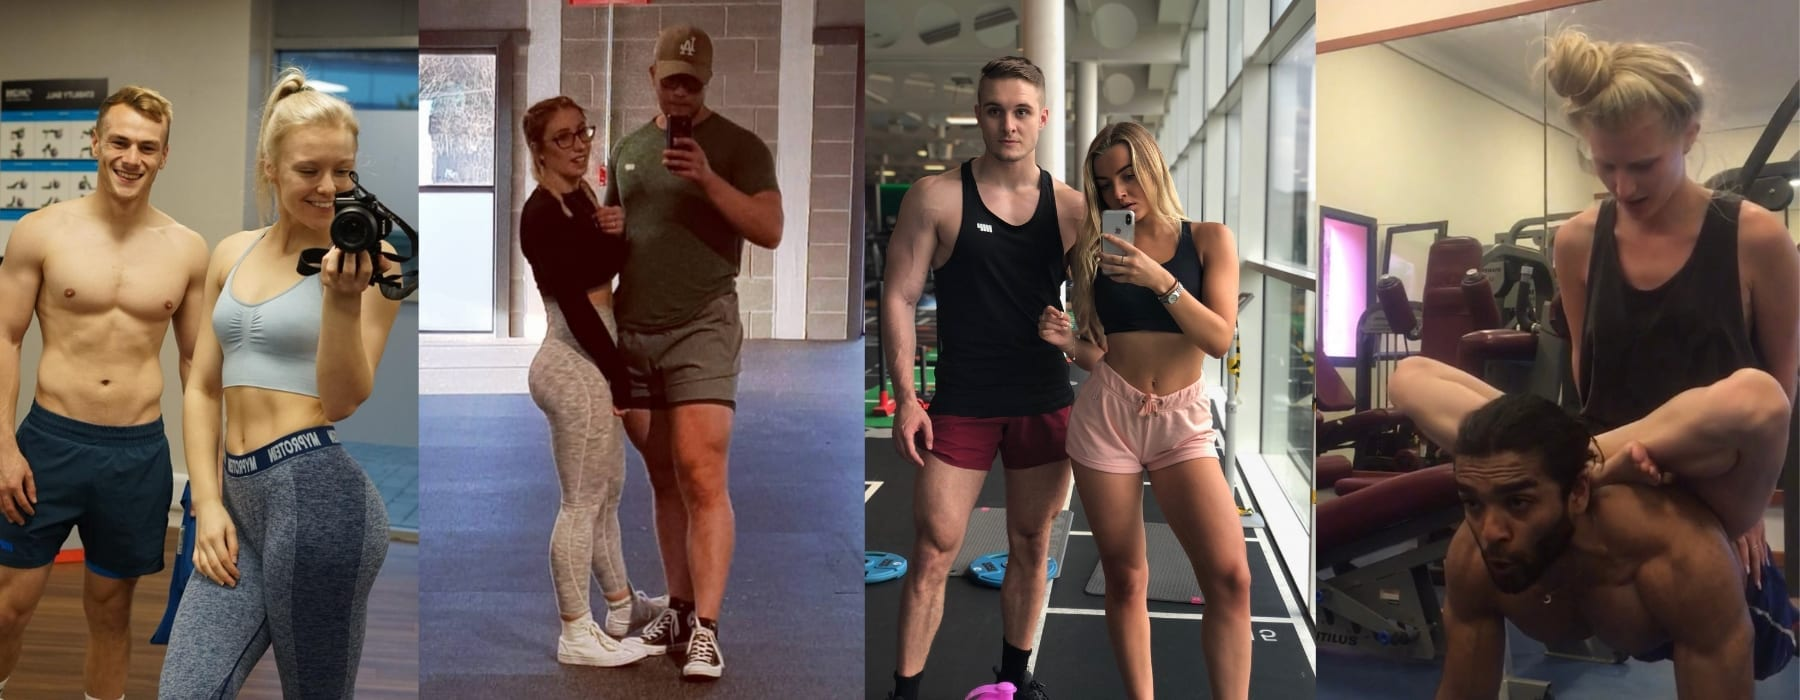 Running Shirts Gym Gifts for Couples Matching Couples Gym Tanks Couples Gym Shirts Train With Your Main Couples Workout Shirts Crossfit Shirts